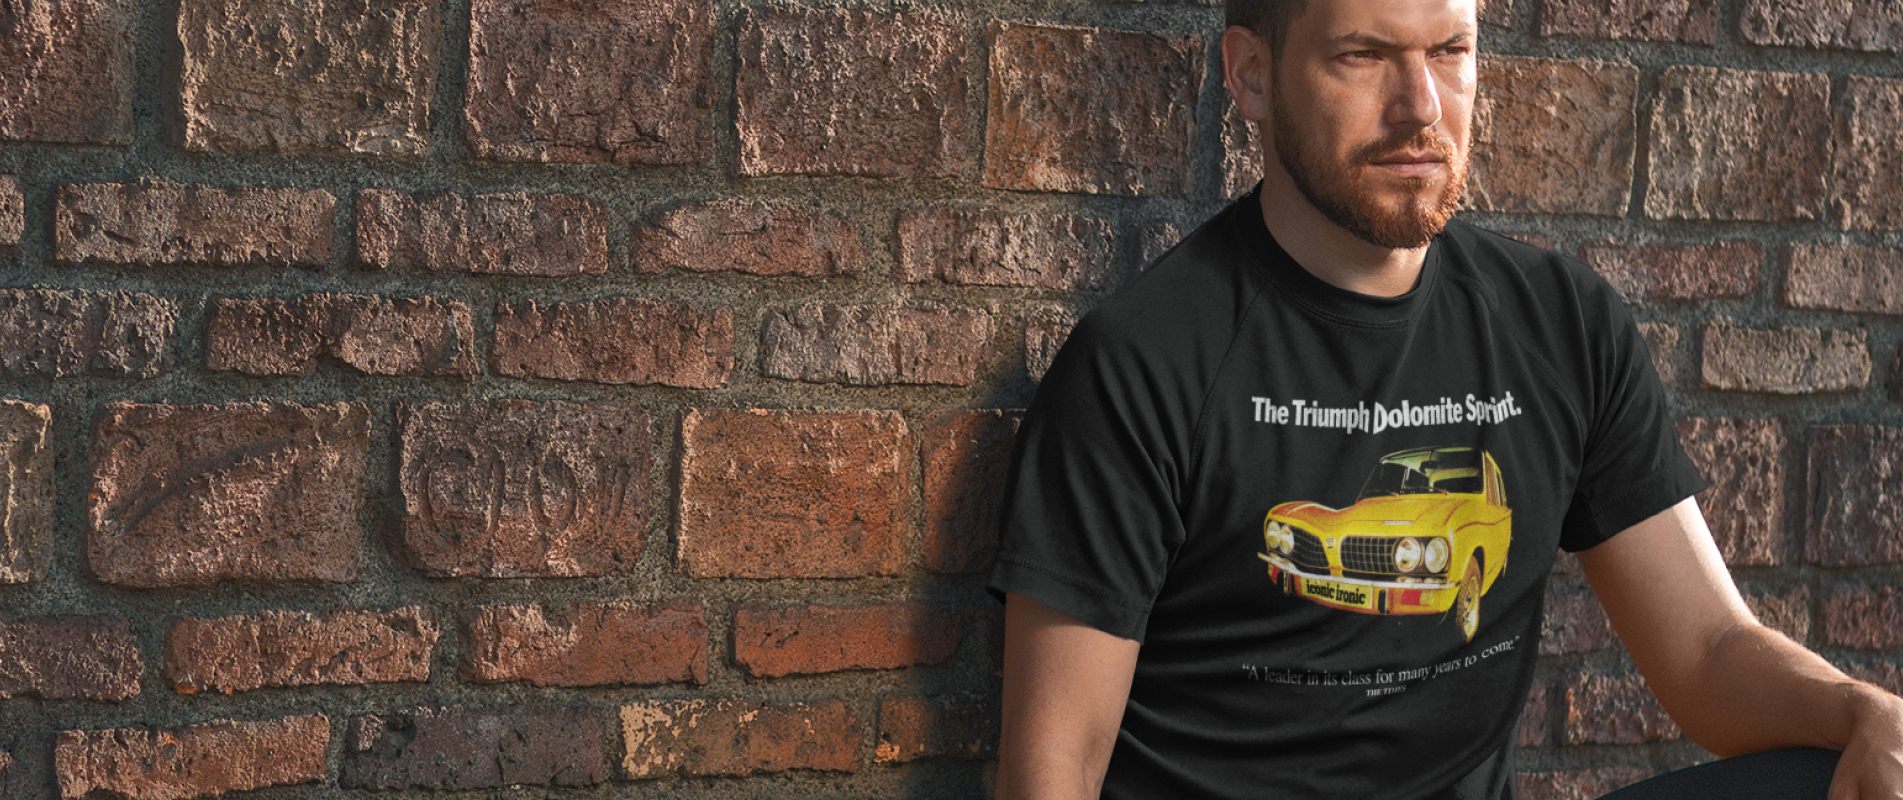 Man leaning on wall wearing Triumph Dolomite Sprint t shirt